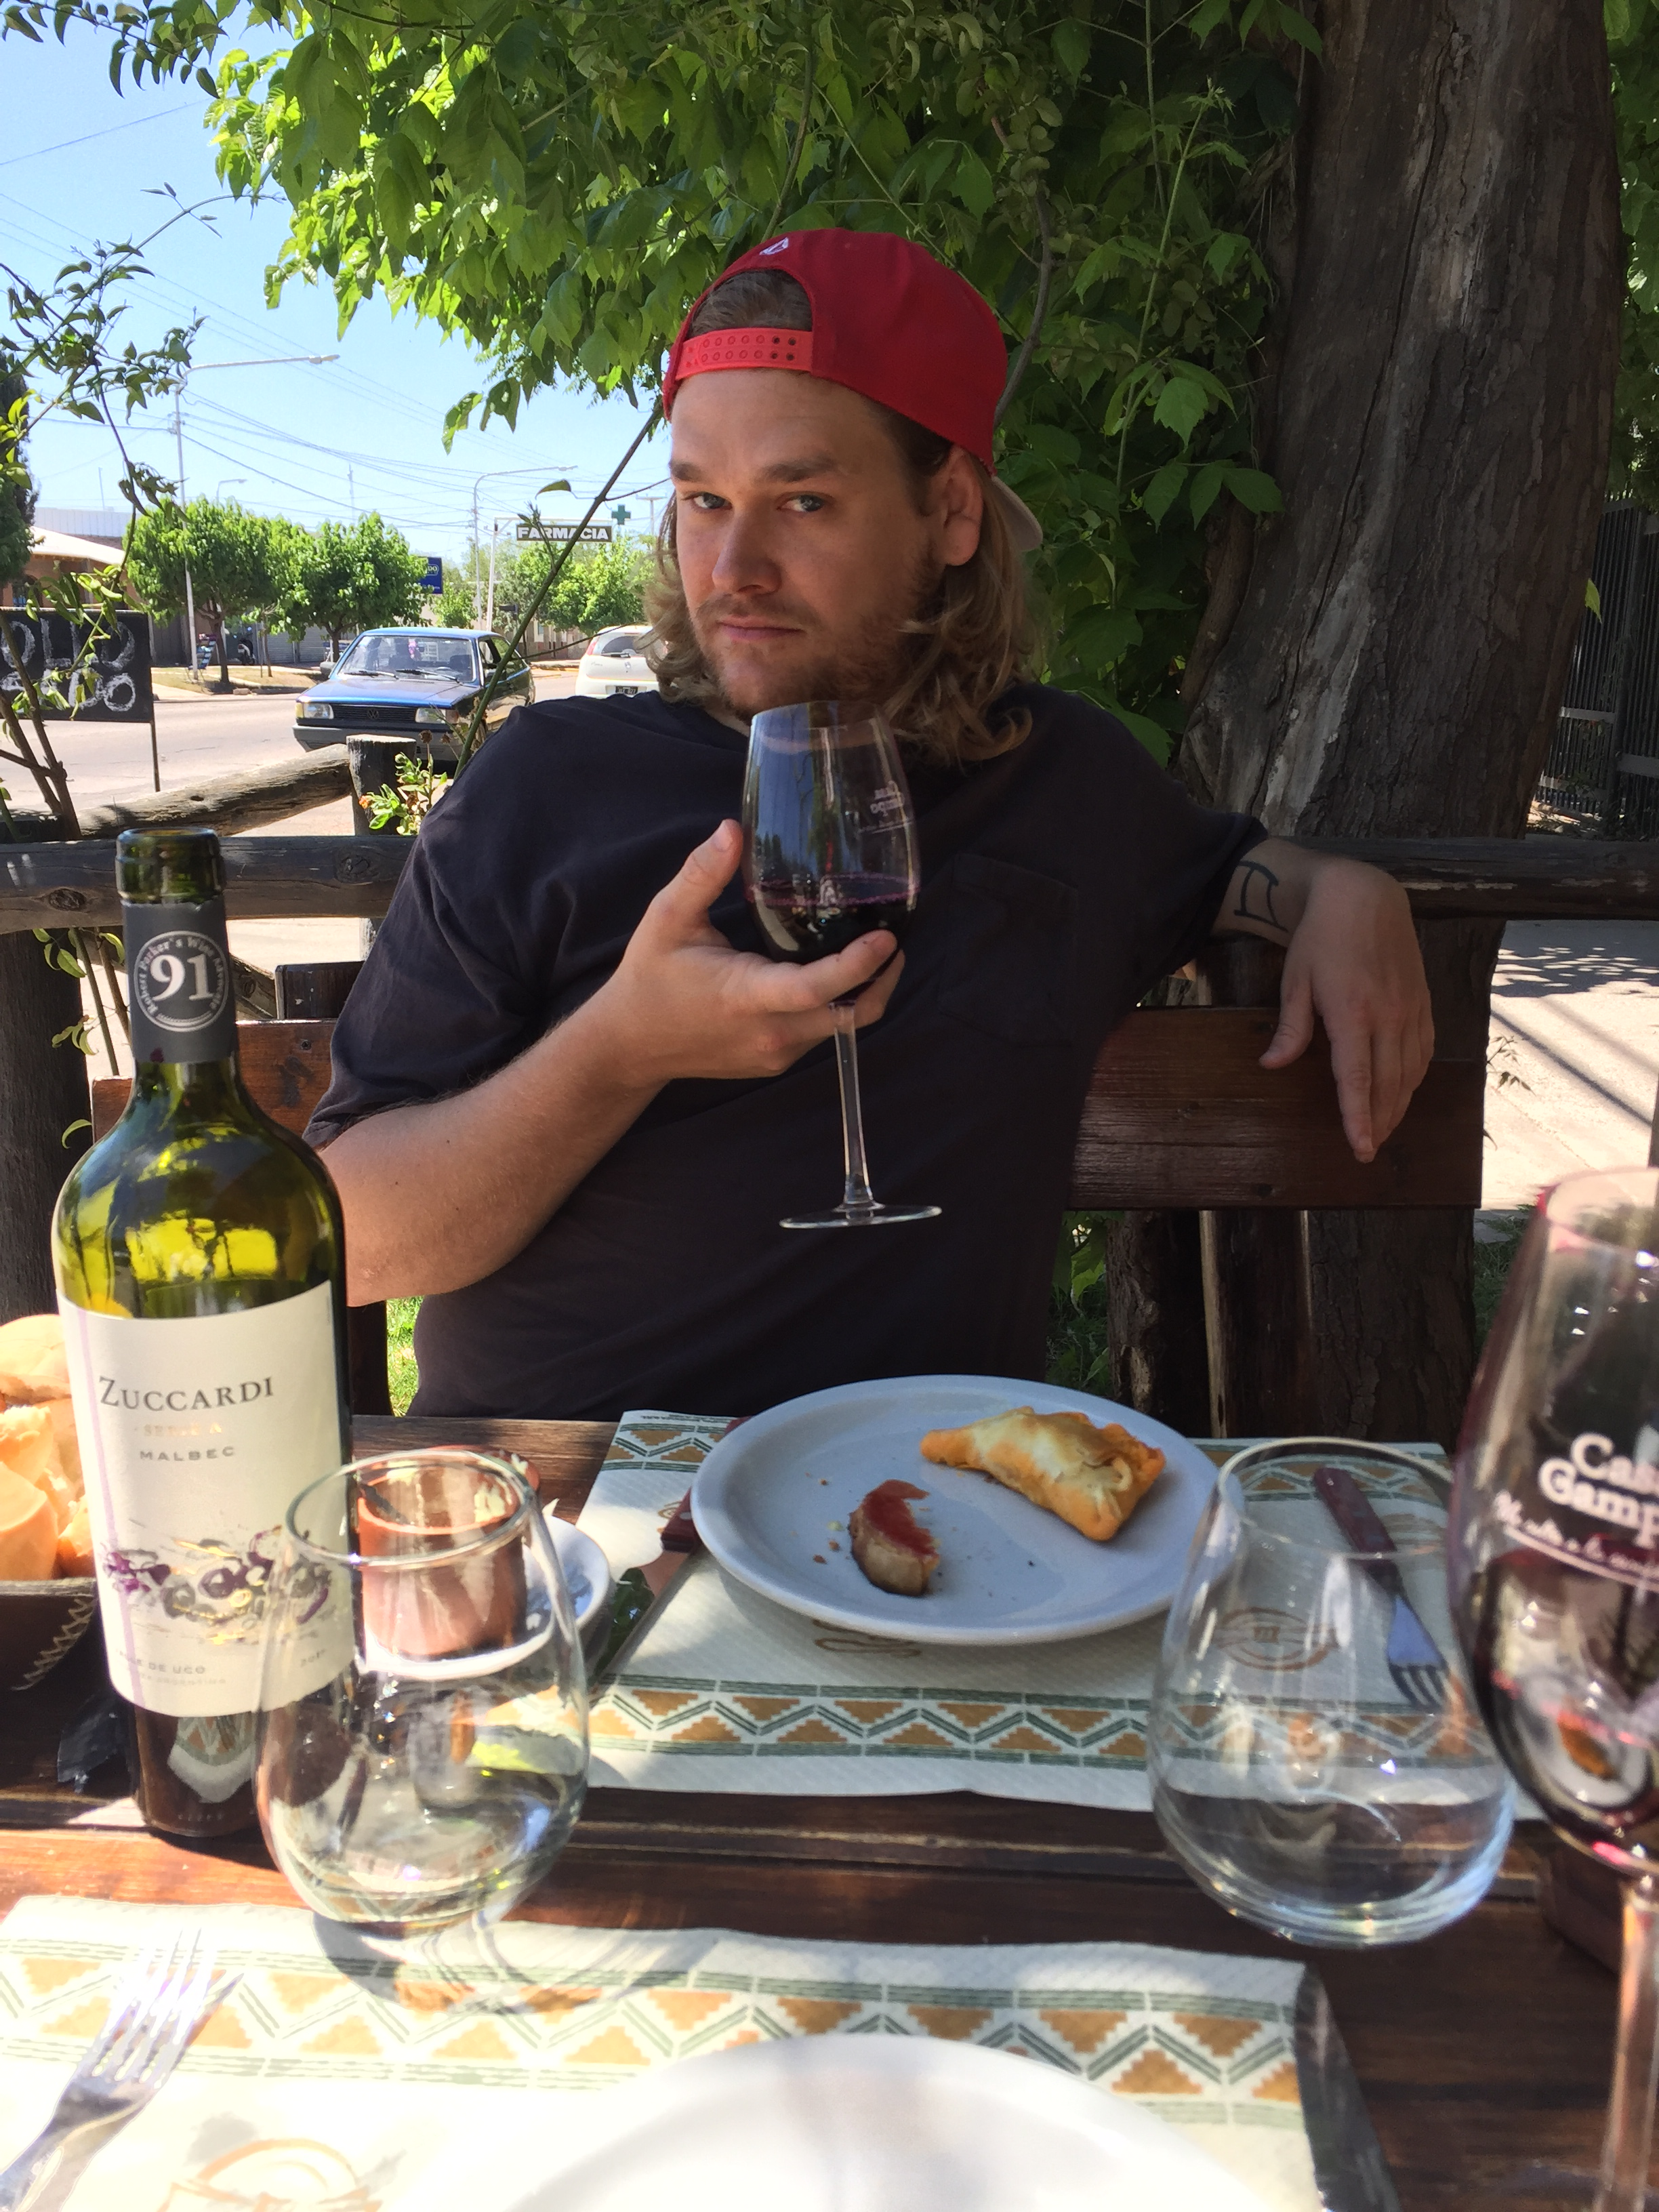 A man with long hair and a red hat sips on some red wine at a dinner table outside.